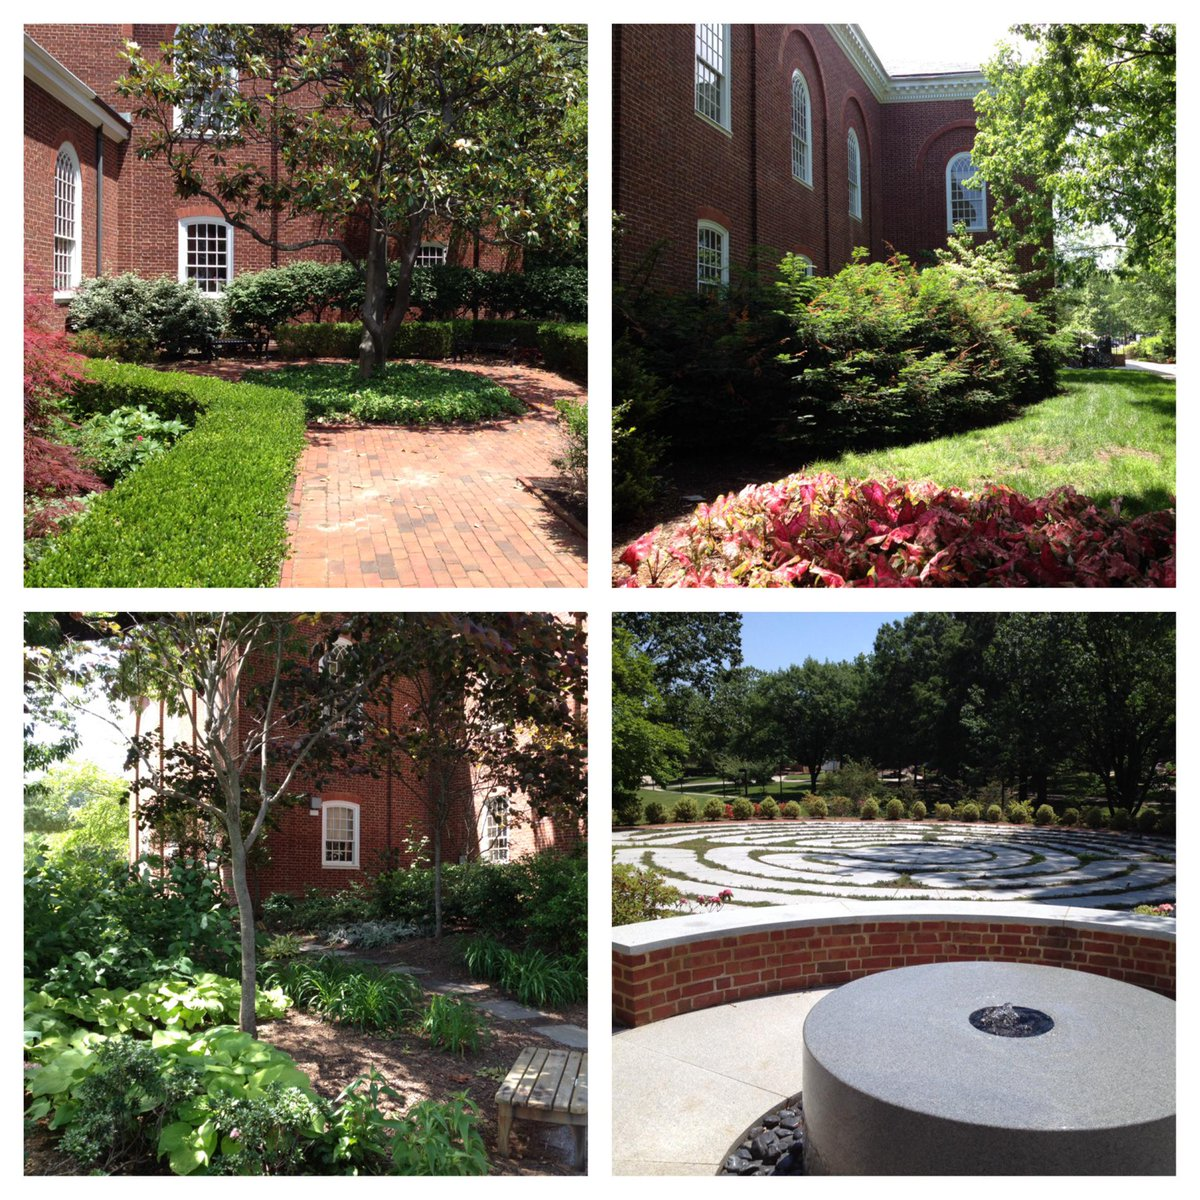 chapelumd on twitter the garden chapel is one of the most attractive spots at memorial chapelstop by one day and take in the scenery - Garden Chapel